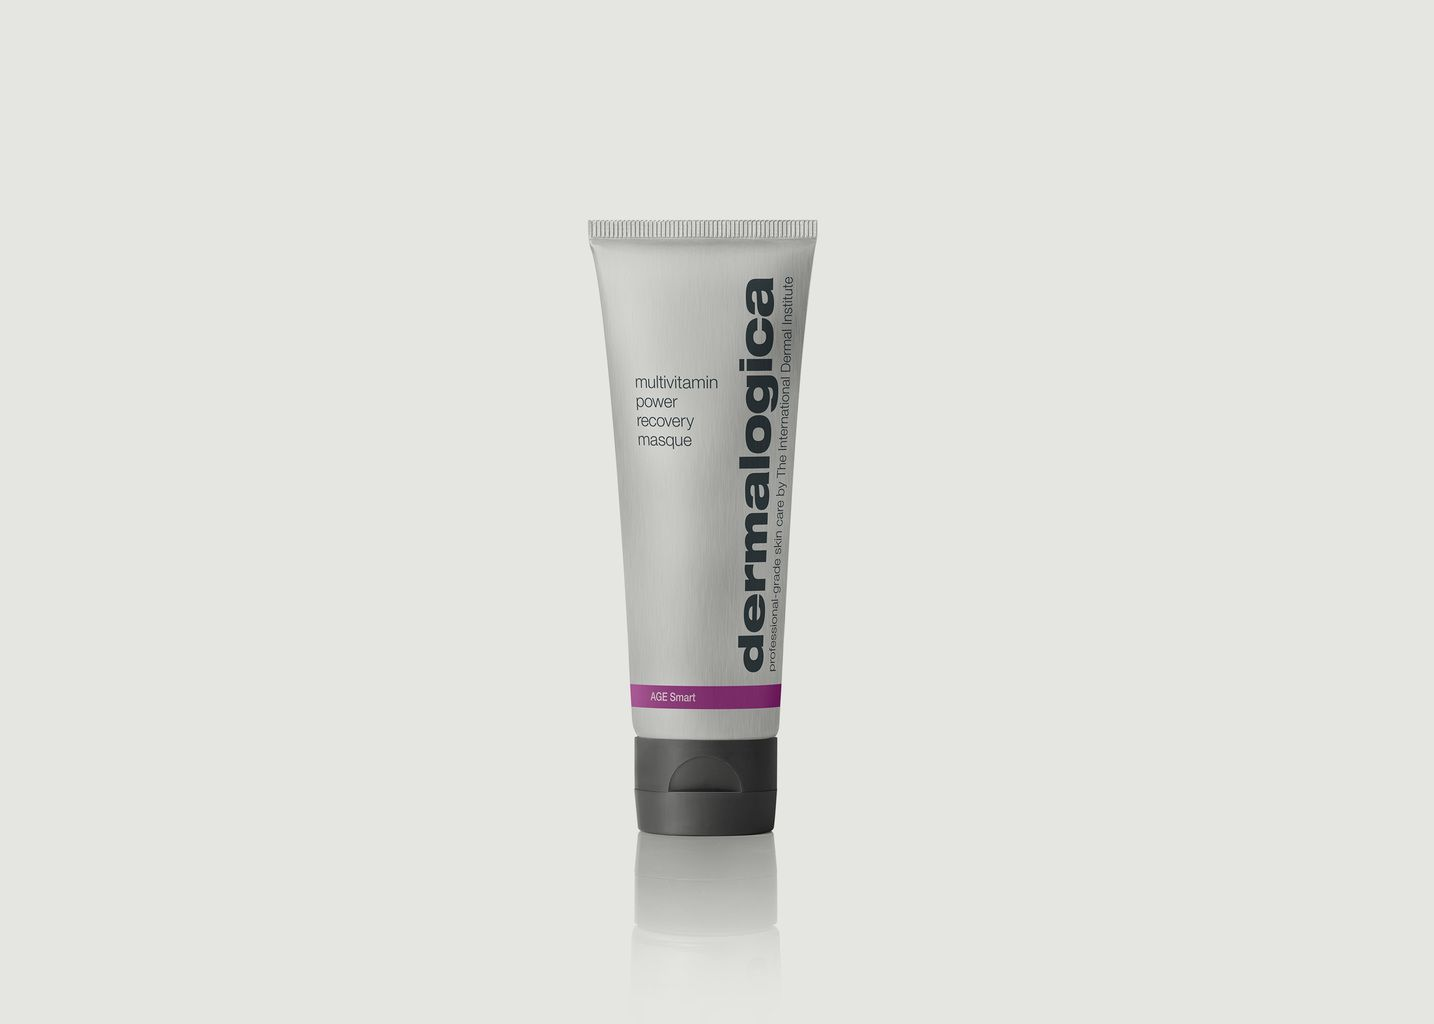 Multivitamin power recovery 75ml - Dermalogica